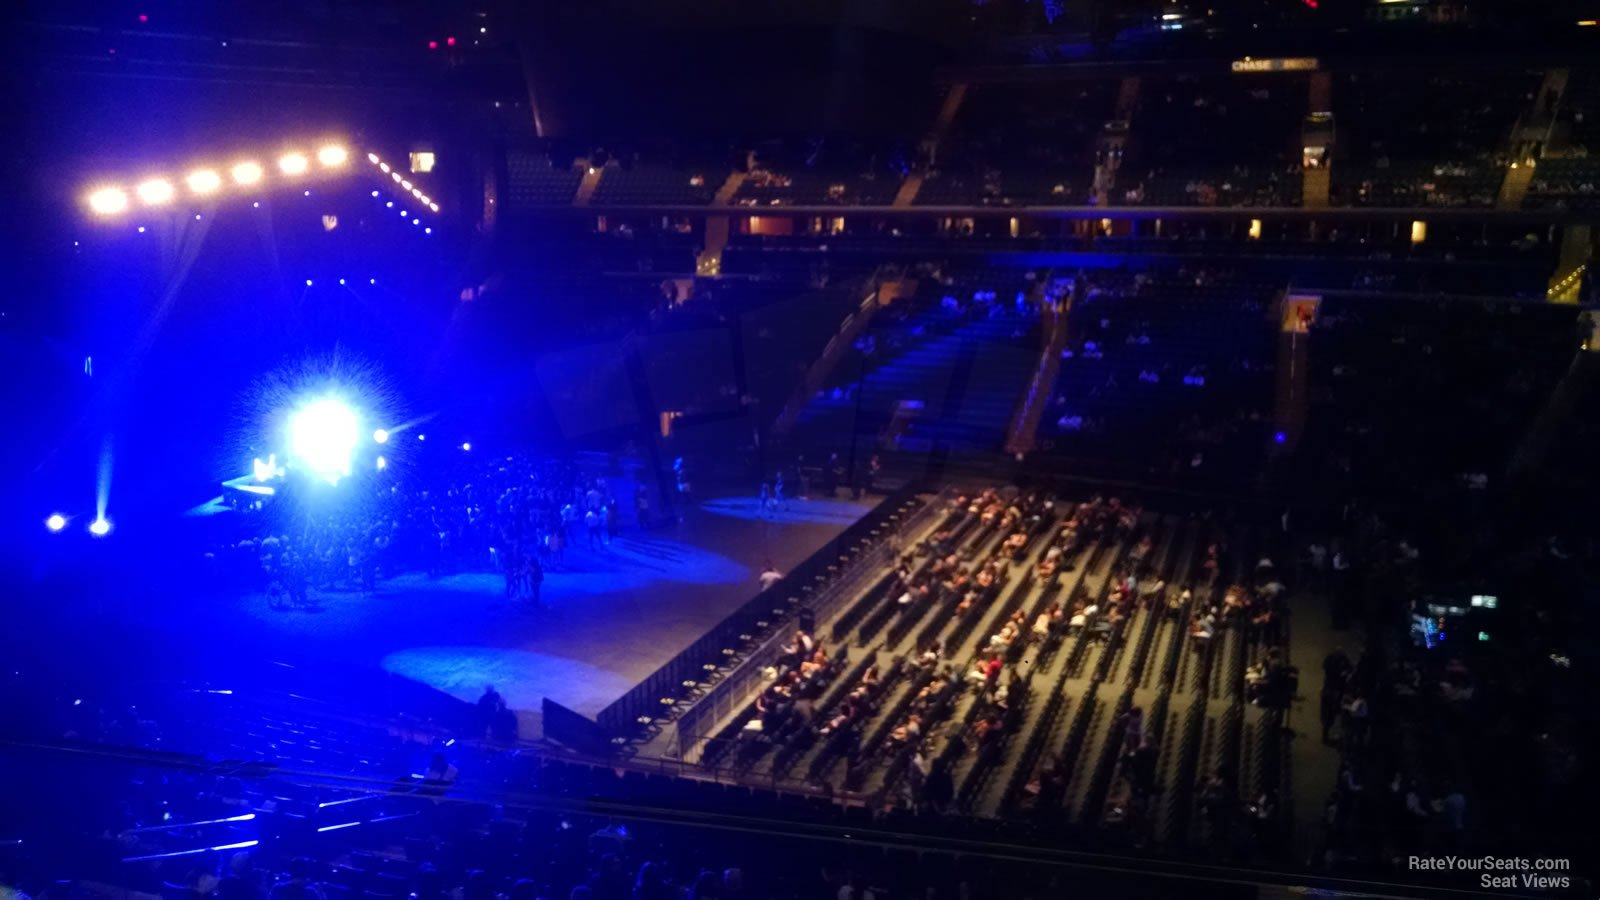 Madison square garden section 225 concert seating - Bruno mars tickets madison square garden ...